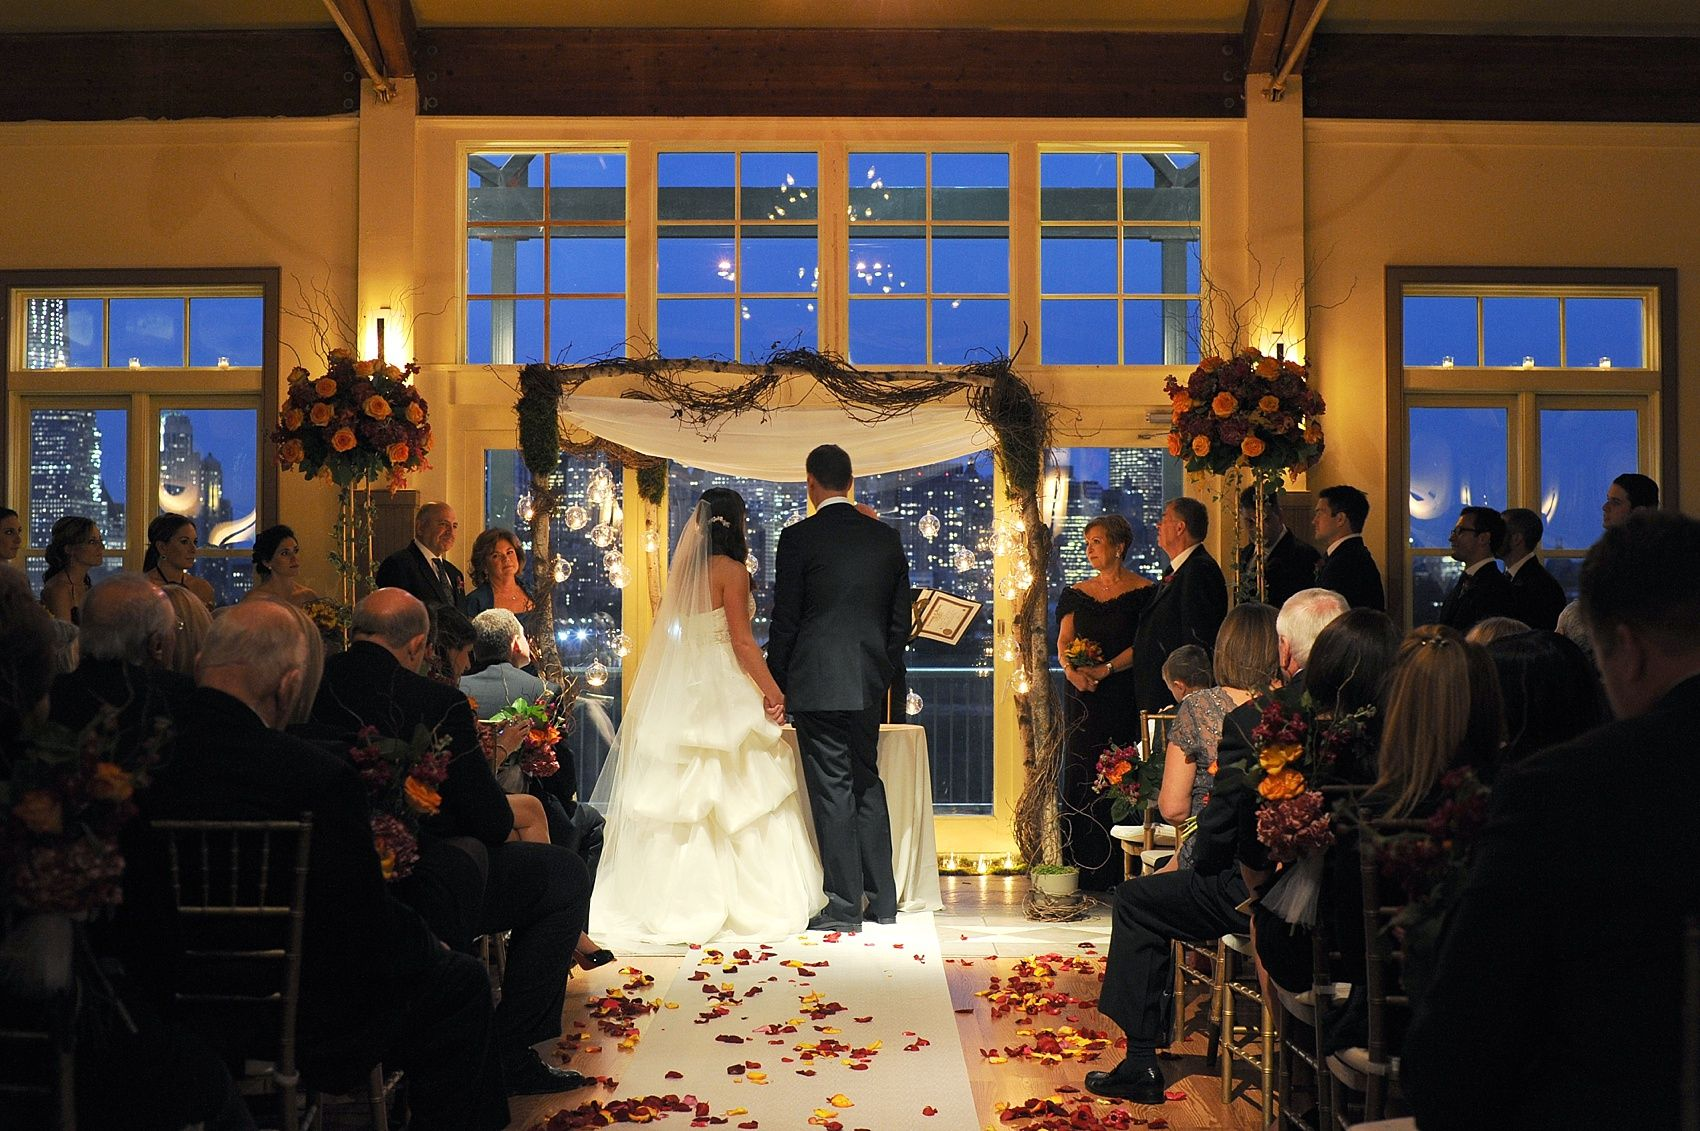 BEAUTIFUL evening ceremony in the Grand Ballroom at Liberty House! Check out Mikkel Paige's blog for more highlights of this couple's special day.